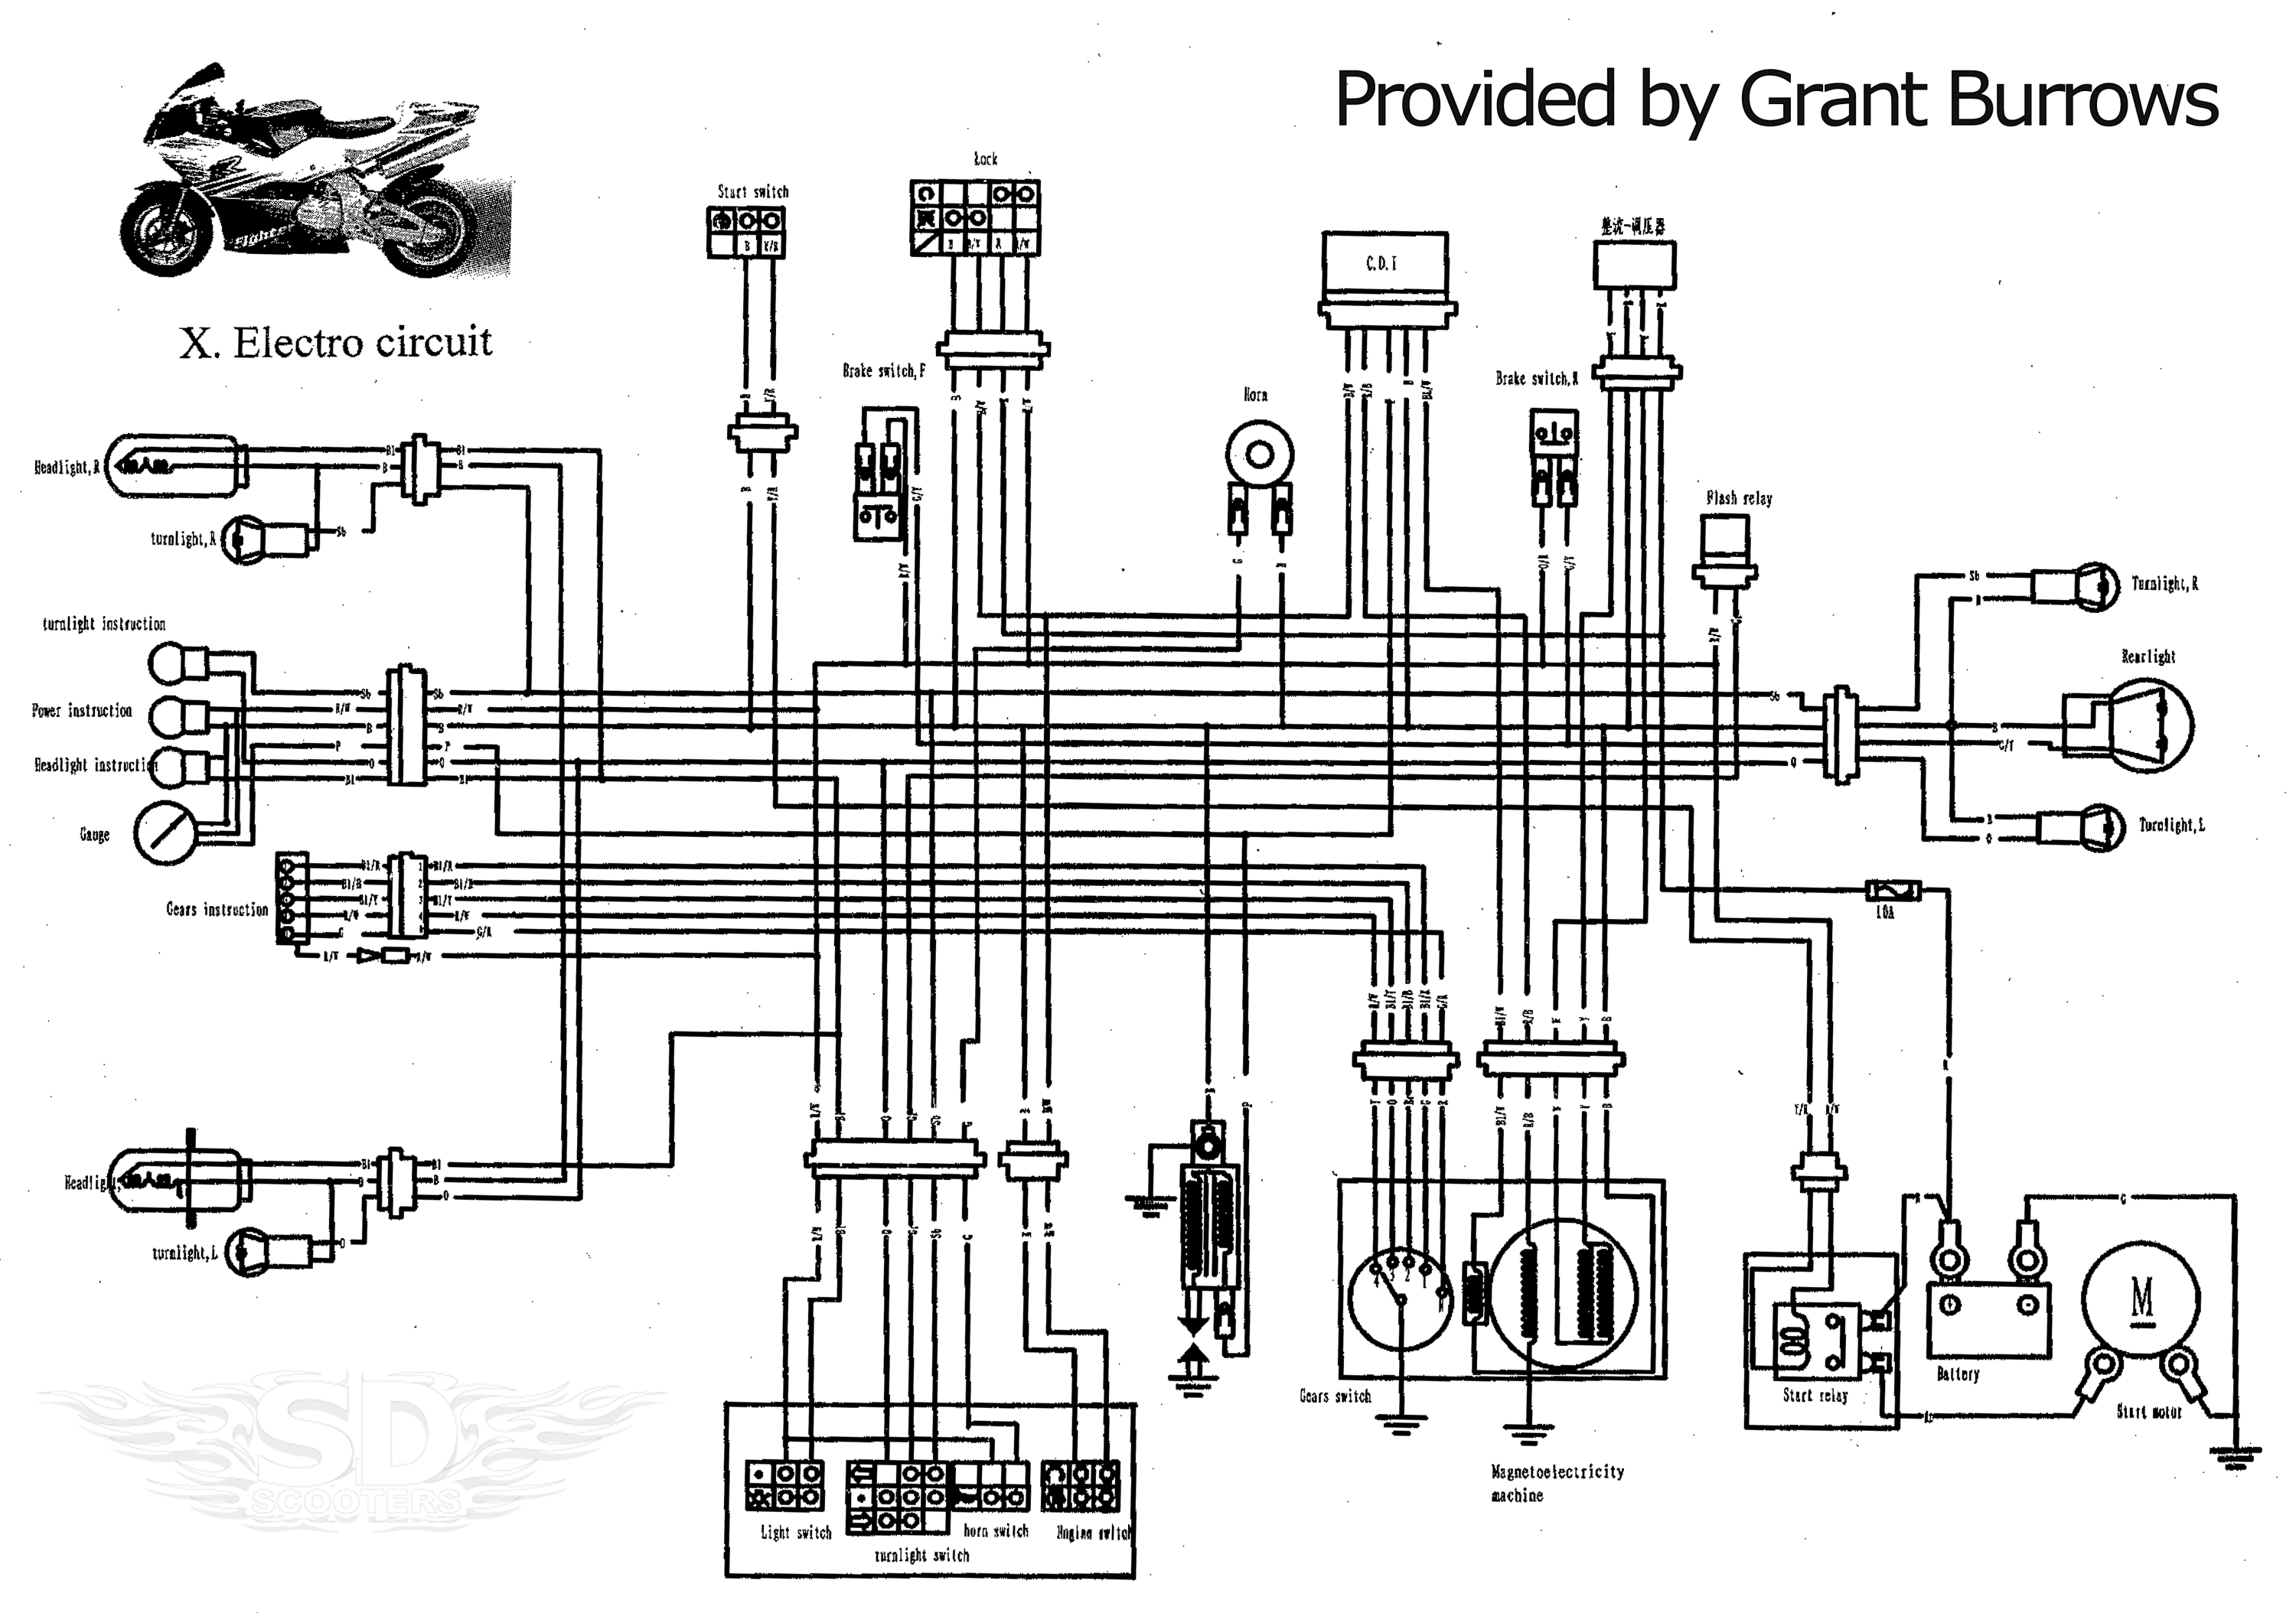 Gas Scooter Wiring Diagrams Diagram Schematics Dji Phantom 2 Motor Go Ped Gtr46i Snowmobile